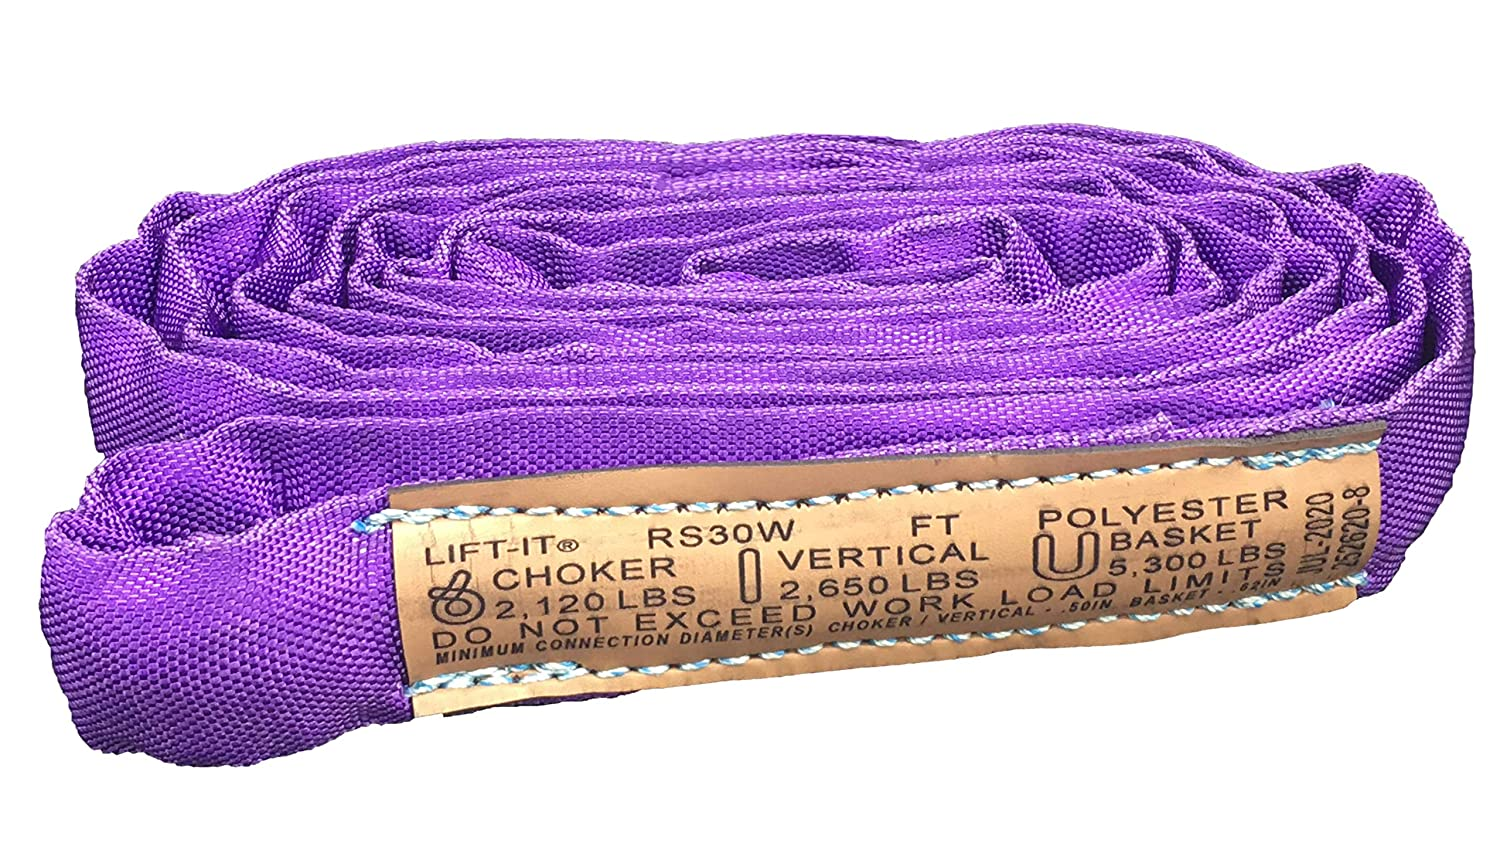 Lift-It Mfg. Endless Polyester Round Sling Lengt Heavy Duty Brand new Be super welcome 4'